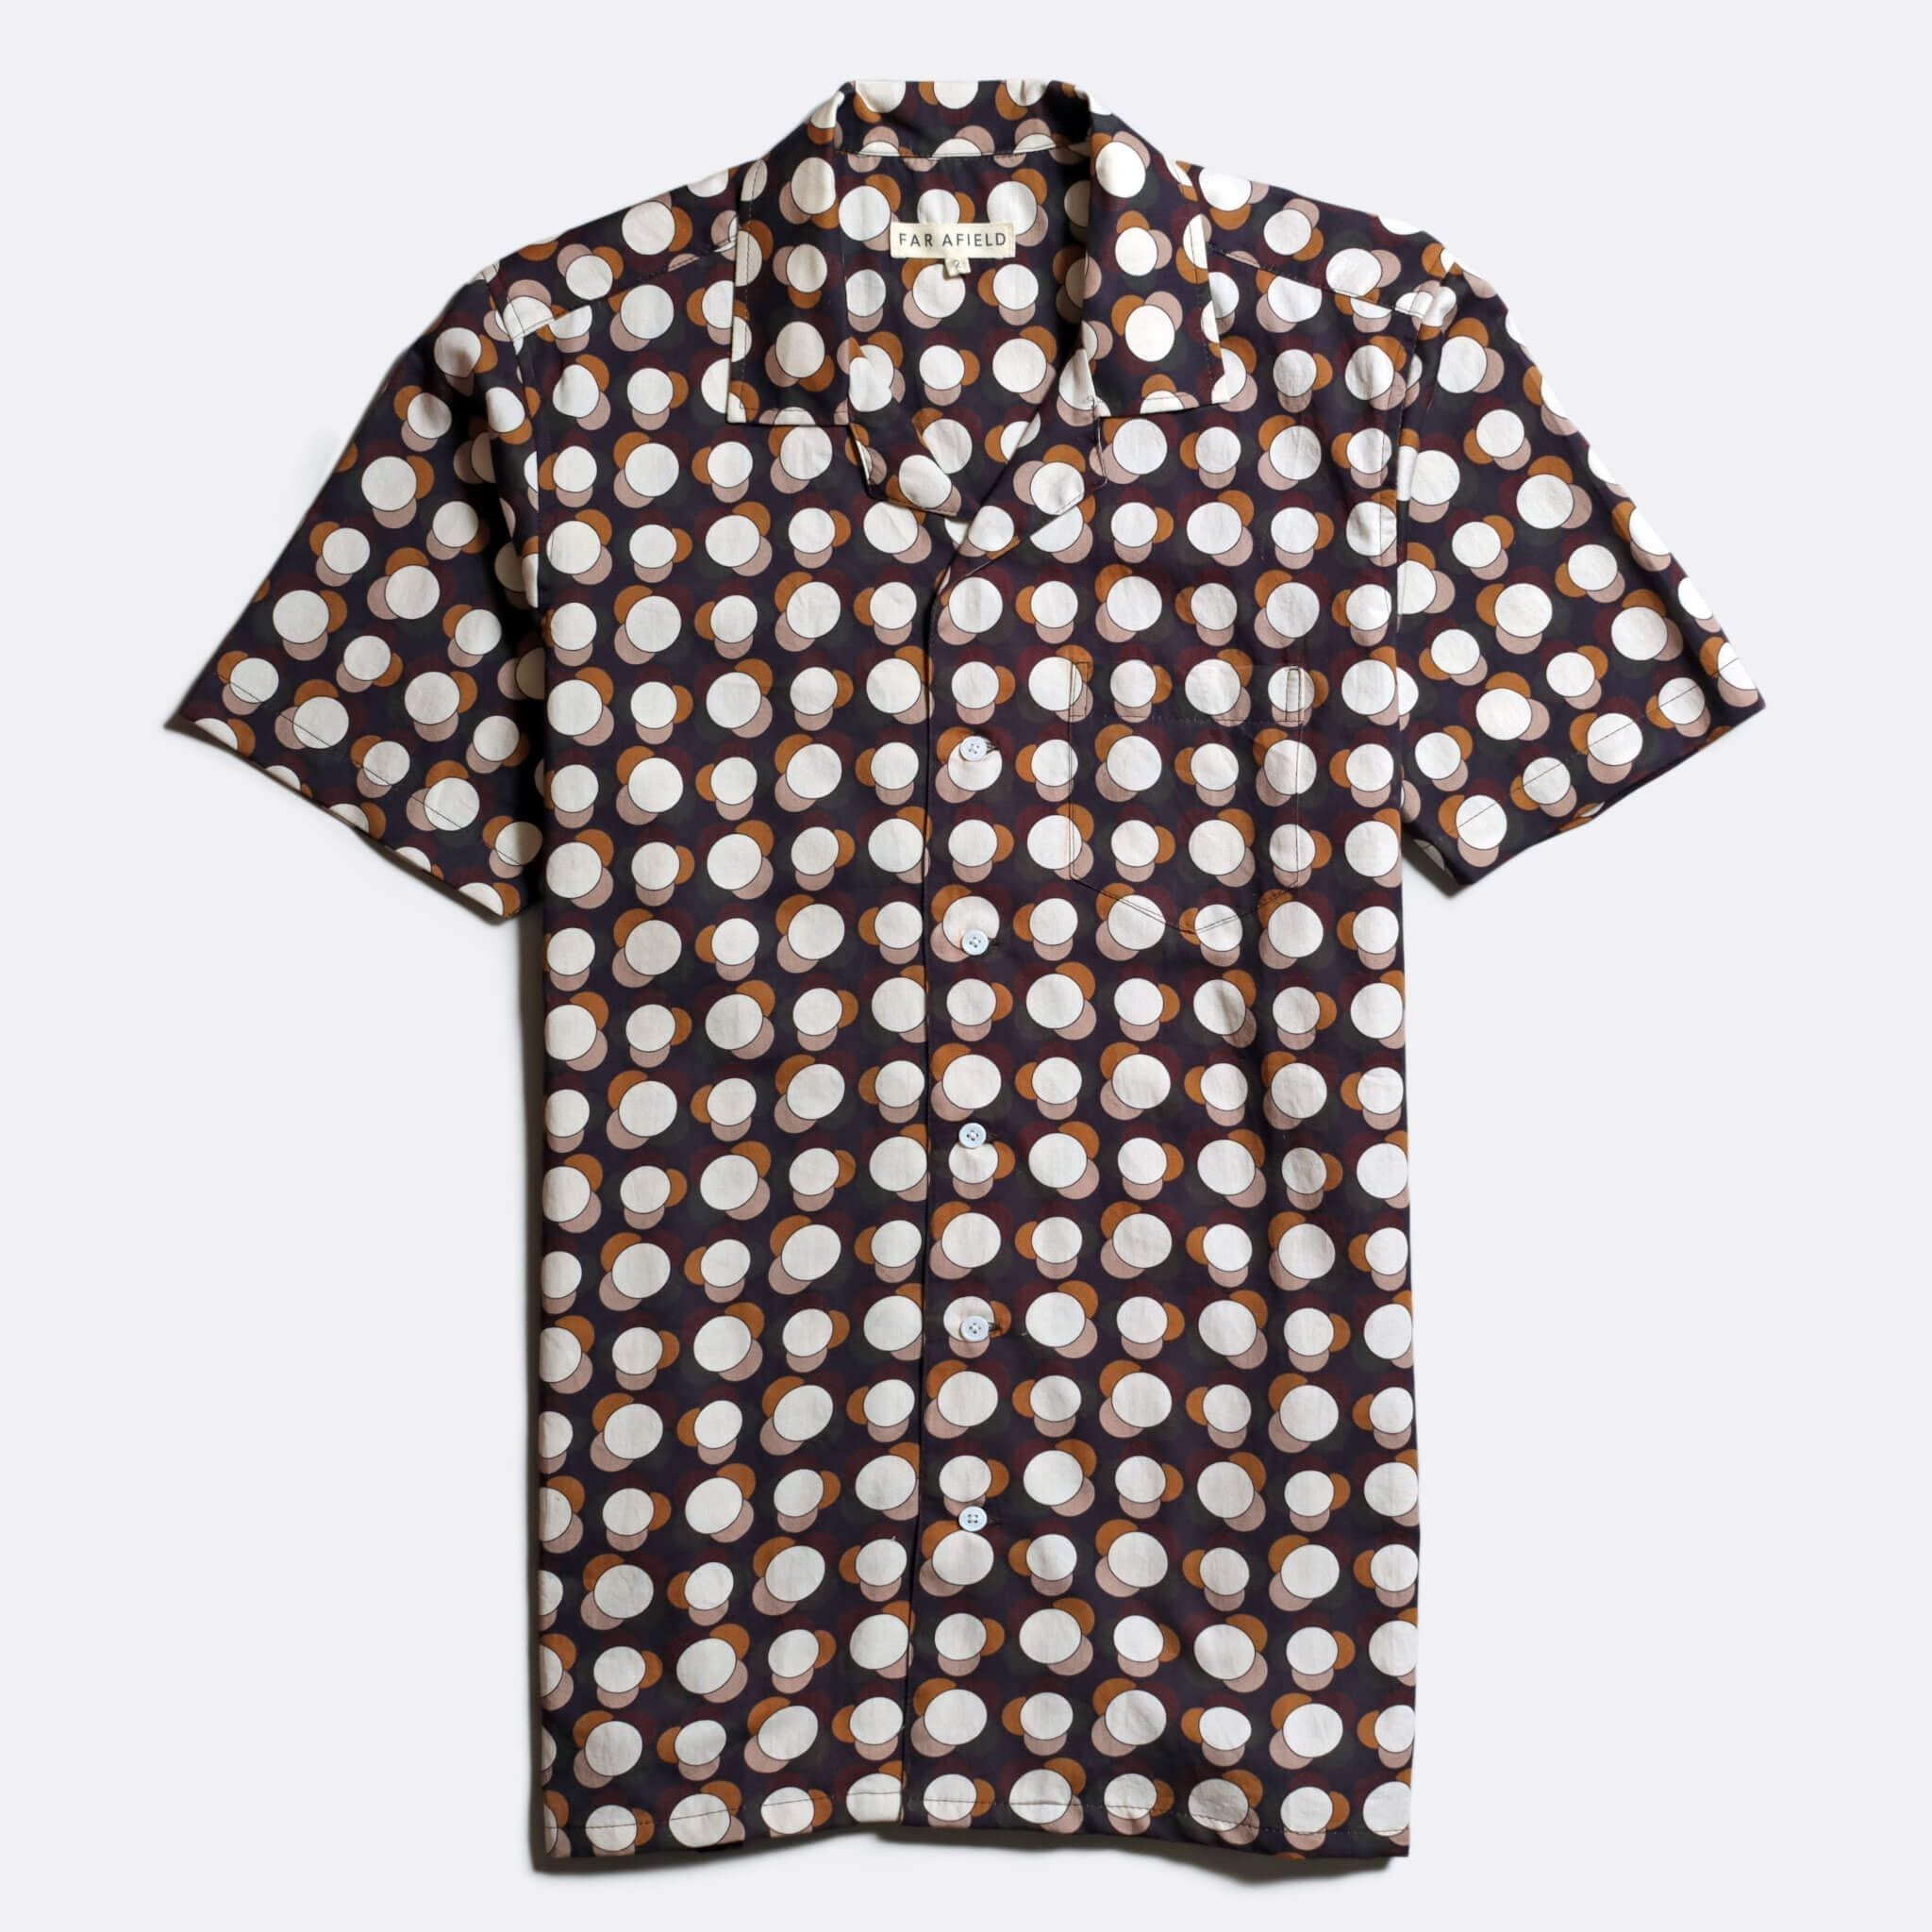 Far Afield x John Lewis Stachio Short Sleeve Shirt a Multi Colour Organic Satin Cotton Fabric Hawaiian Bowling Style Smart Casual